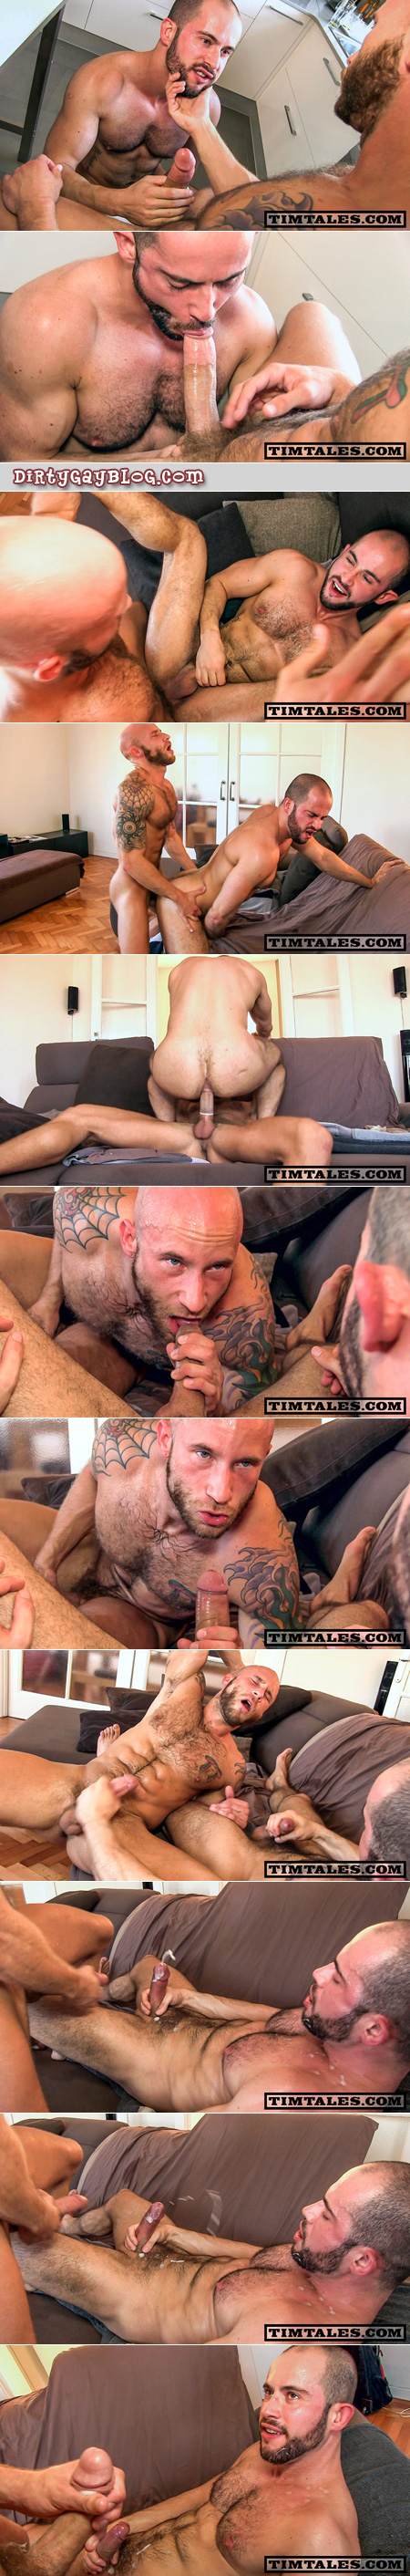 Heavily tattooed, bald, hairy cub sucks an enormous cum load out of his uncut friend after fucking his tight little ass.